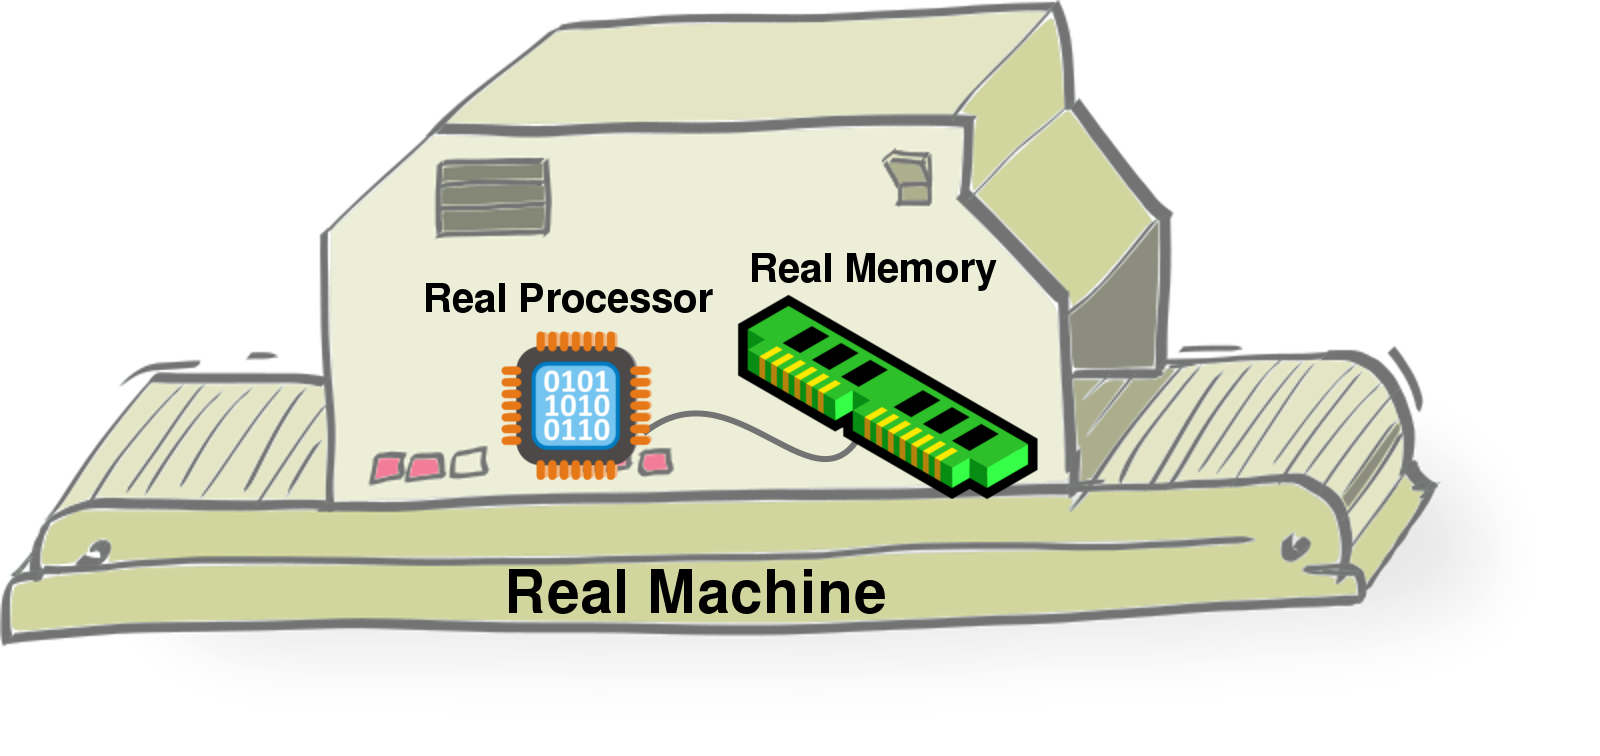 A Real Machine